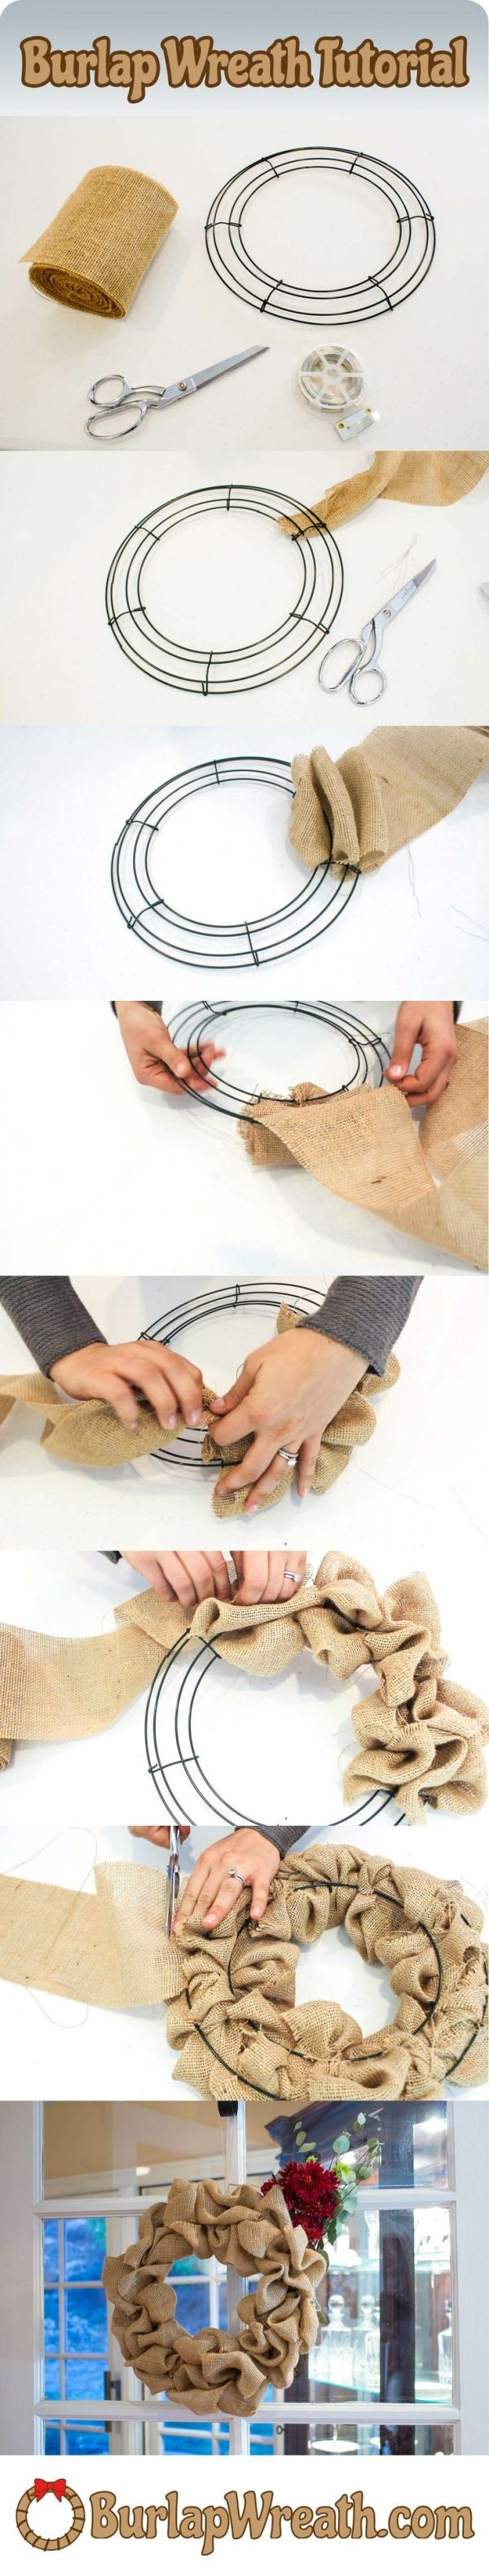 How to make a burlap wreath: Want to make a burlap wreath? Check out this easy to use tutorial showing you how to make a burlap wreath in less than 10 minutes. All you need is a wreath frame, 20-30 feet of burlap ribbon and some wire. DIY burlap wreaths make a great craft project. by ammieiscool